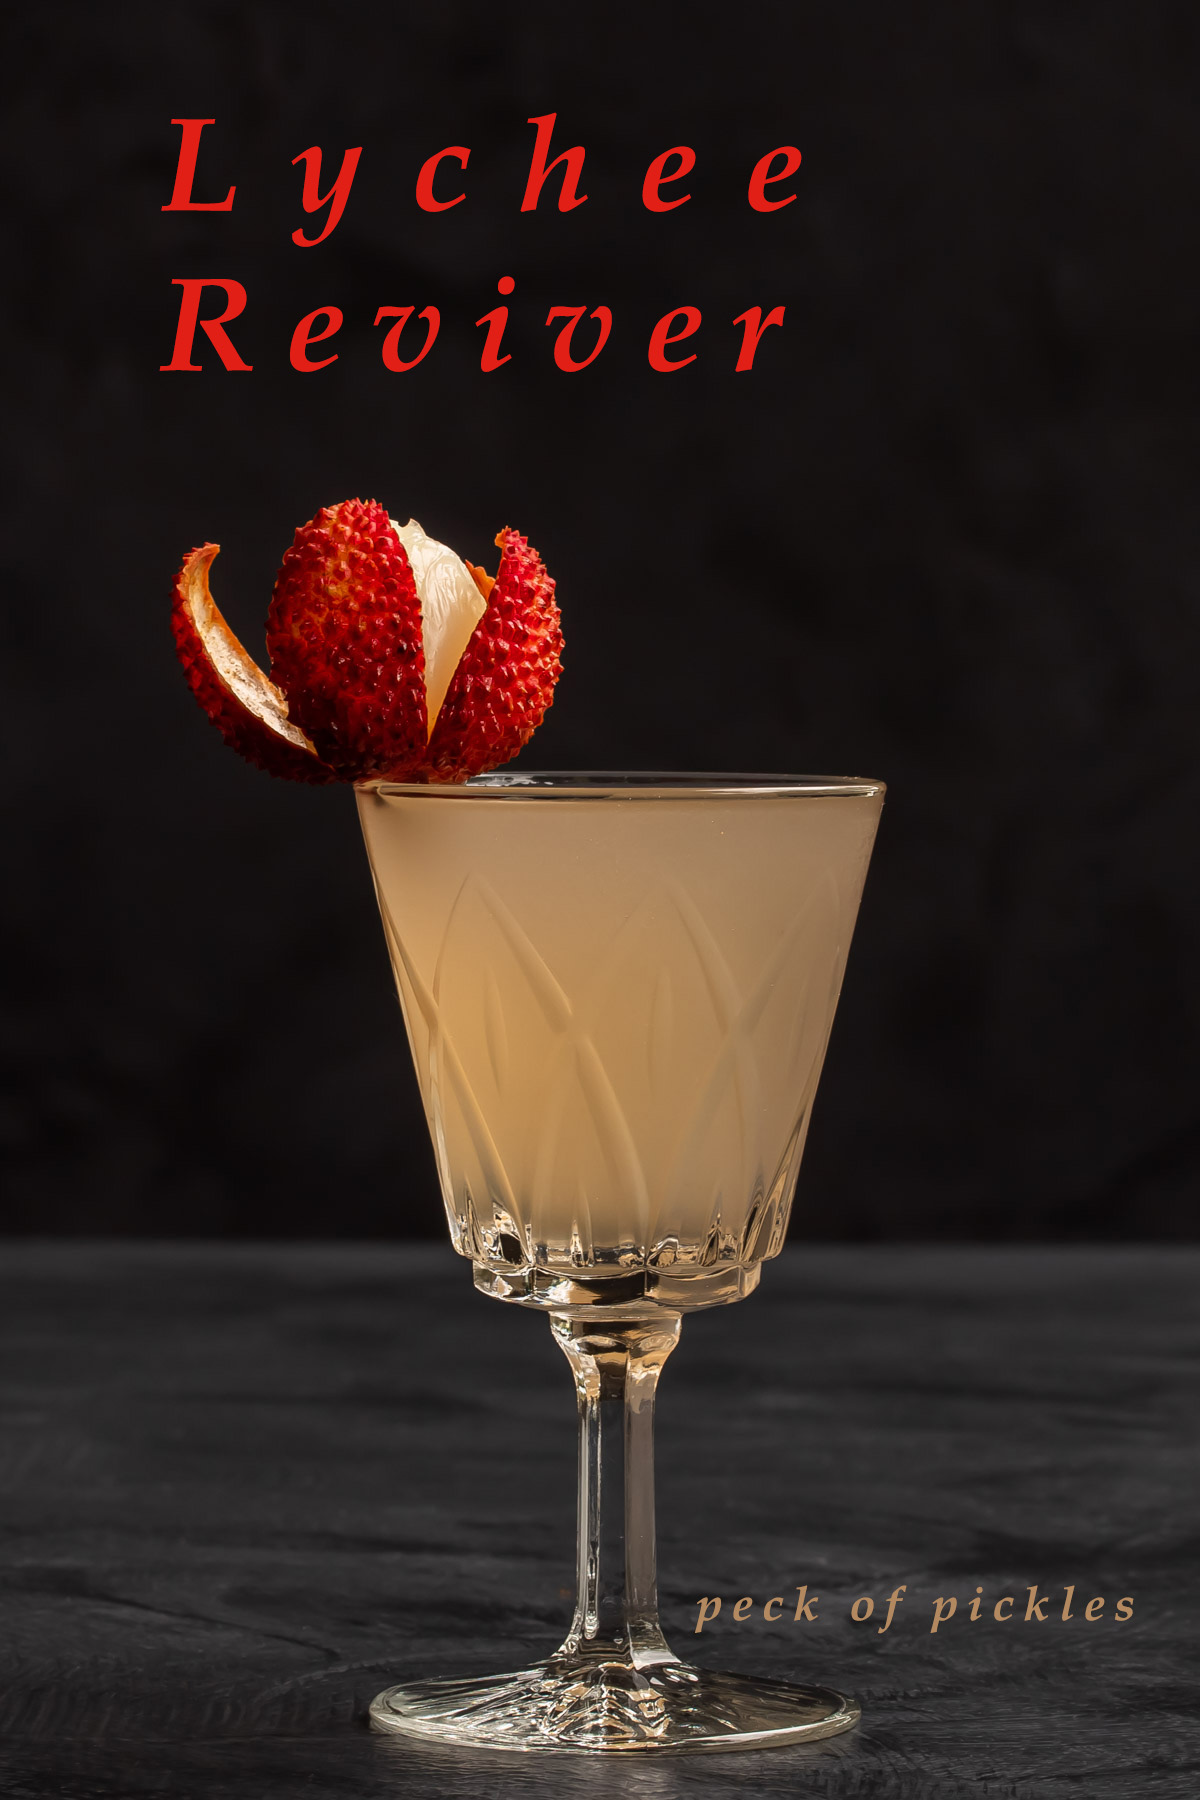 lychee reviver cocktail with lychee garnish